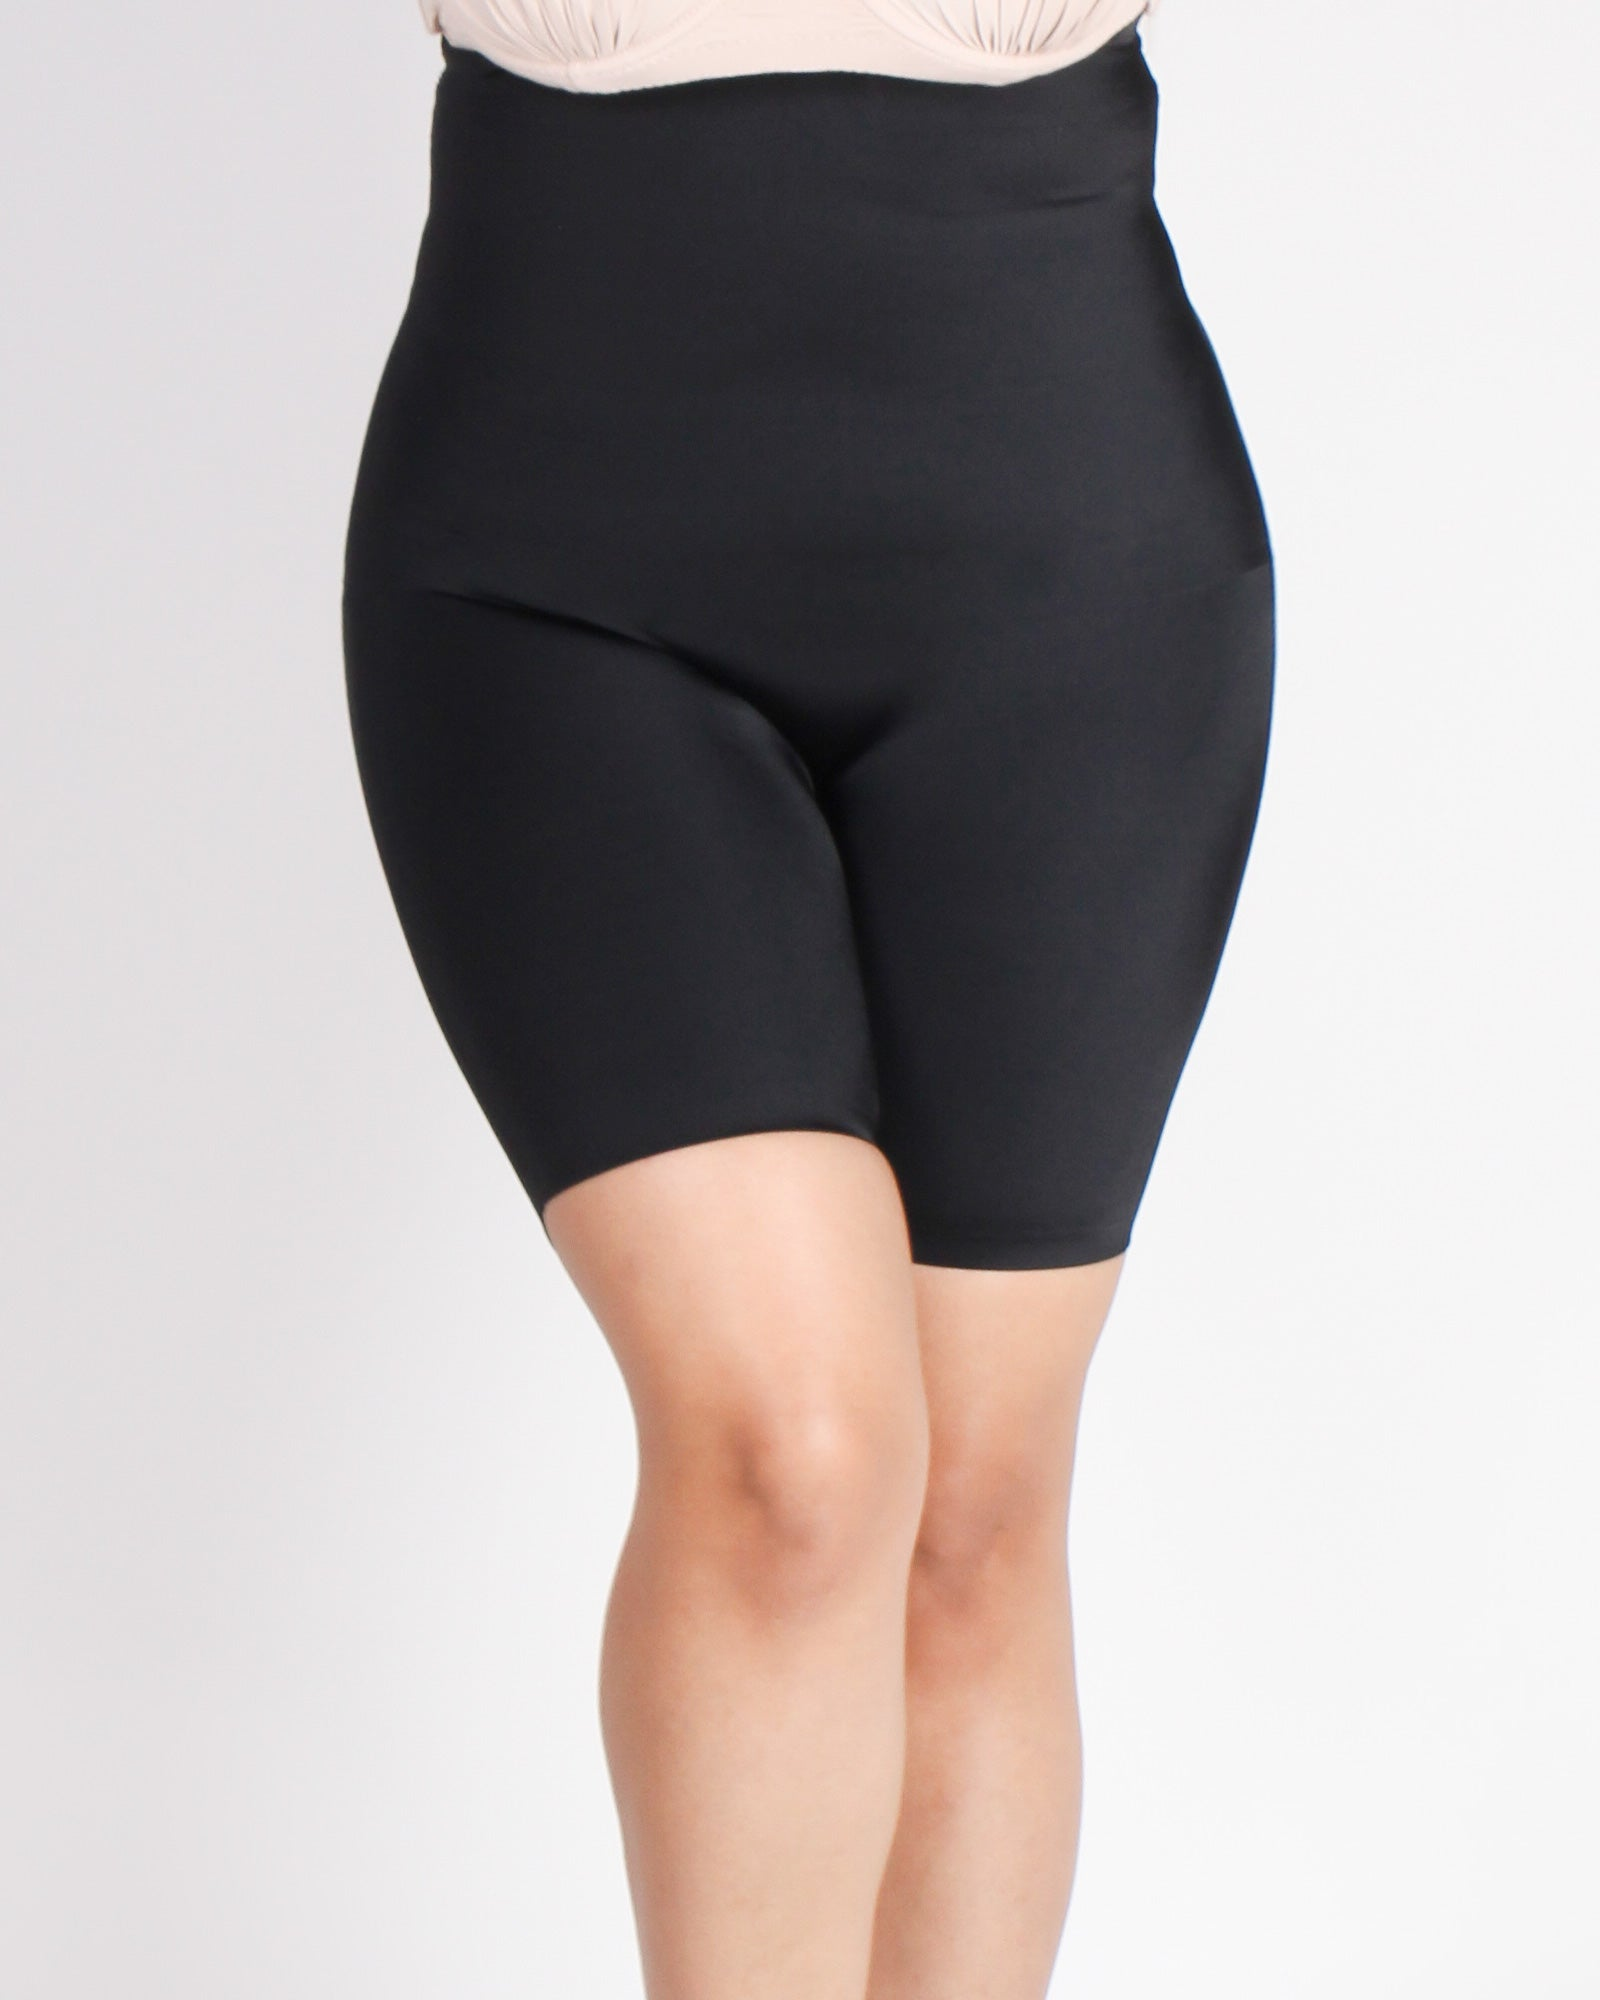 Fashion Q Shop Q Want You Badly Plus Body Shaper (Black) 70102-SSP